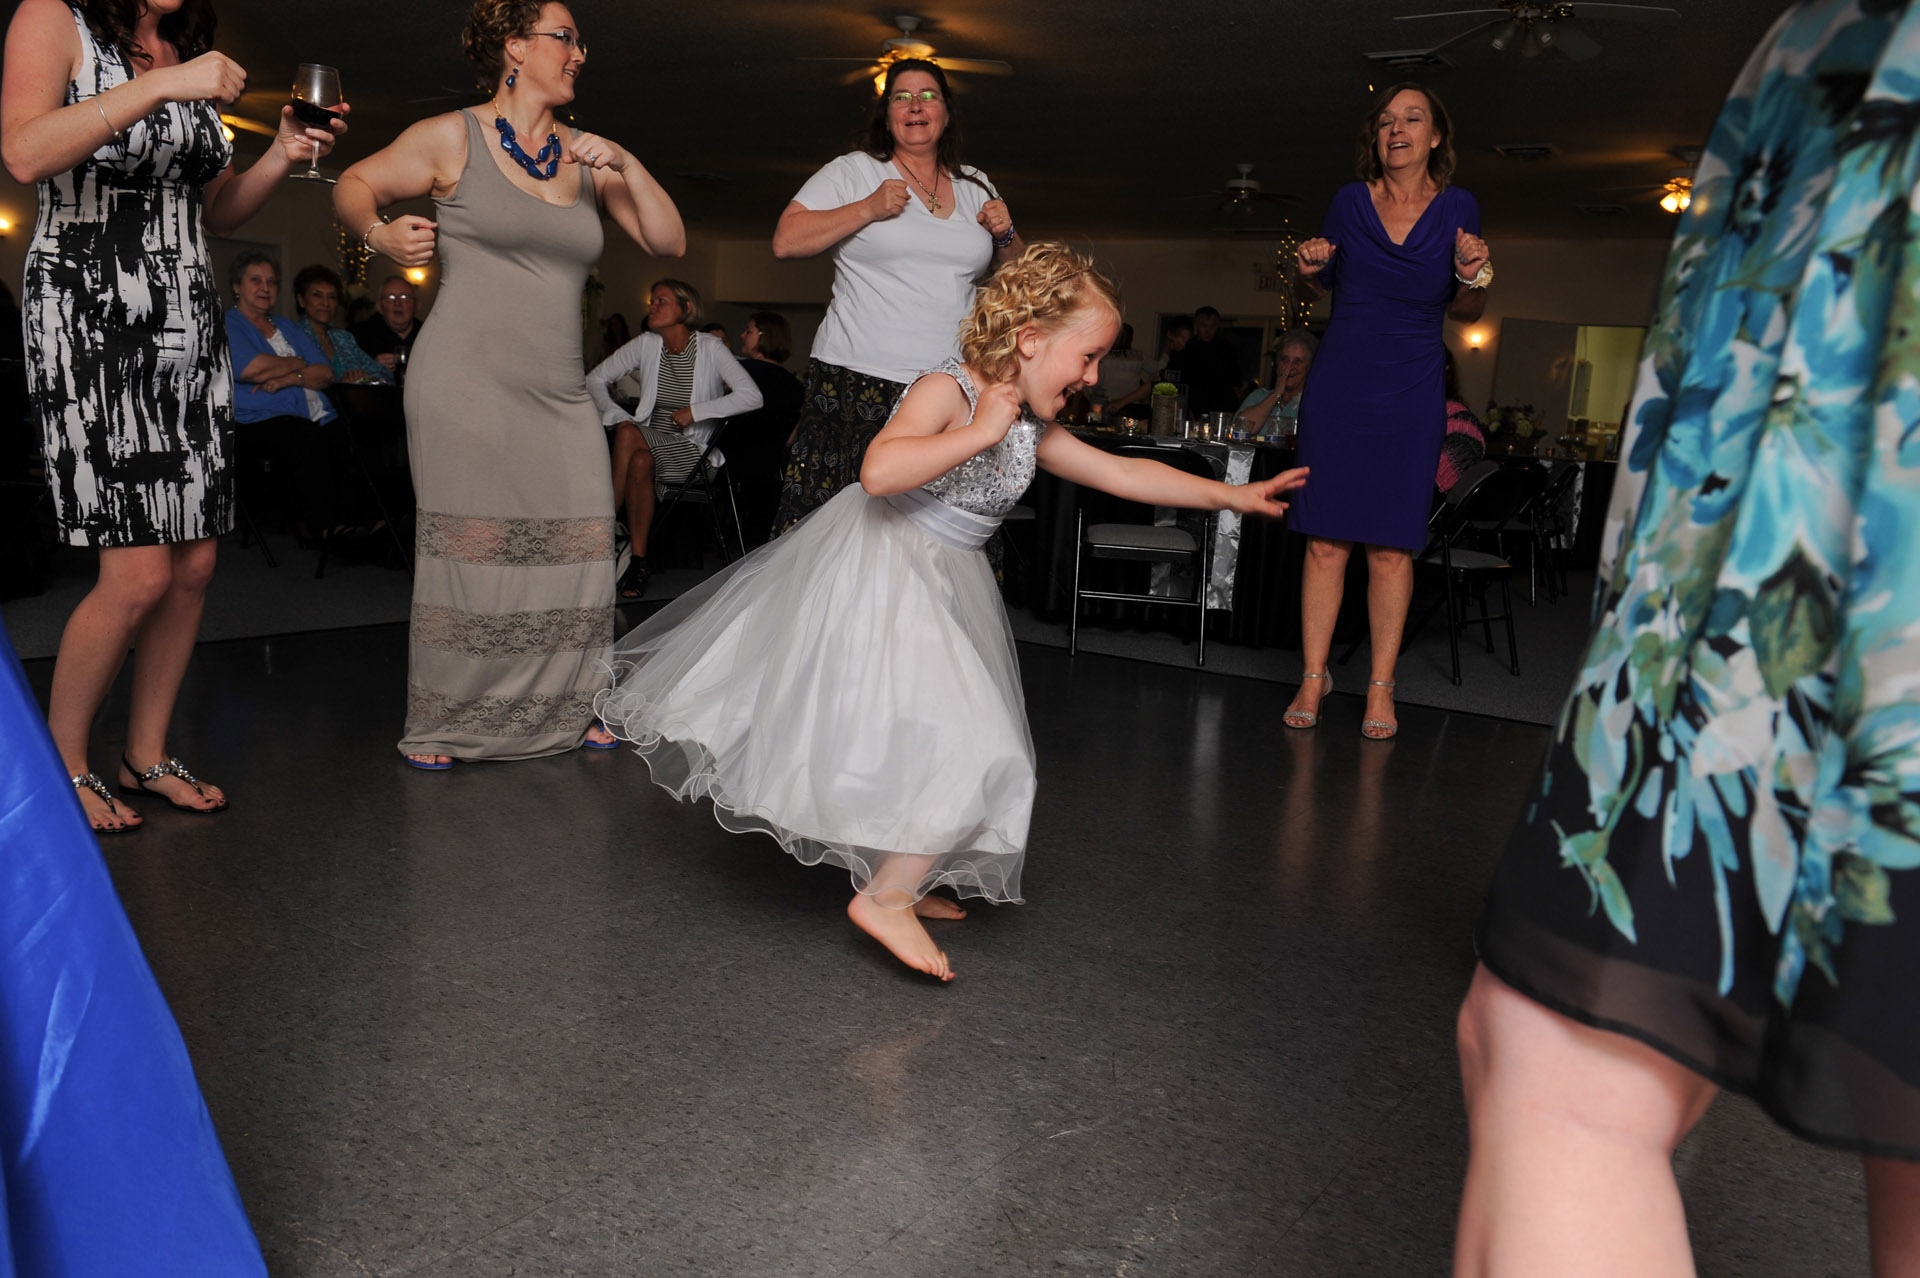 The budget conscience brides featuring contemporary and Pinterest worthy wedding photographs in Michigan highlights moving away from Pinterest to creating your unique wedding photography showing the flower girl dancing in the center of the guests during a wedding at the Michigan wedding that emphasized photojournalist's moments and kept the bride on her budget.